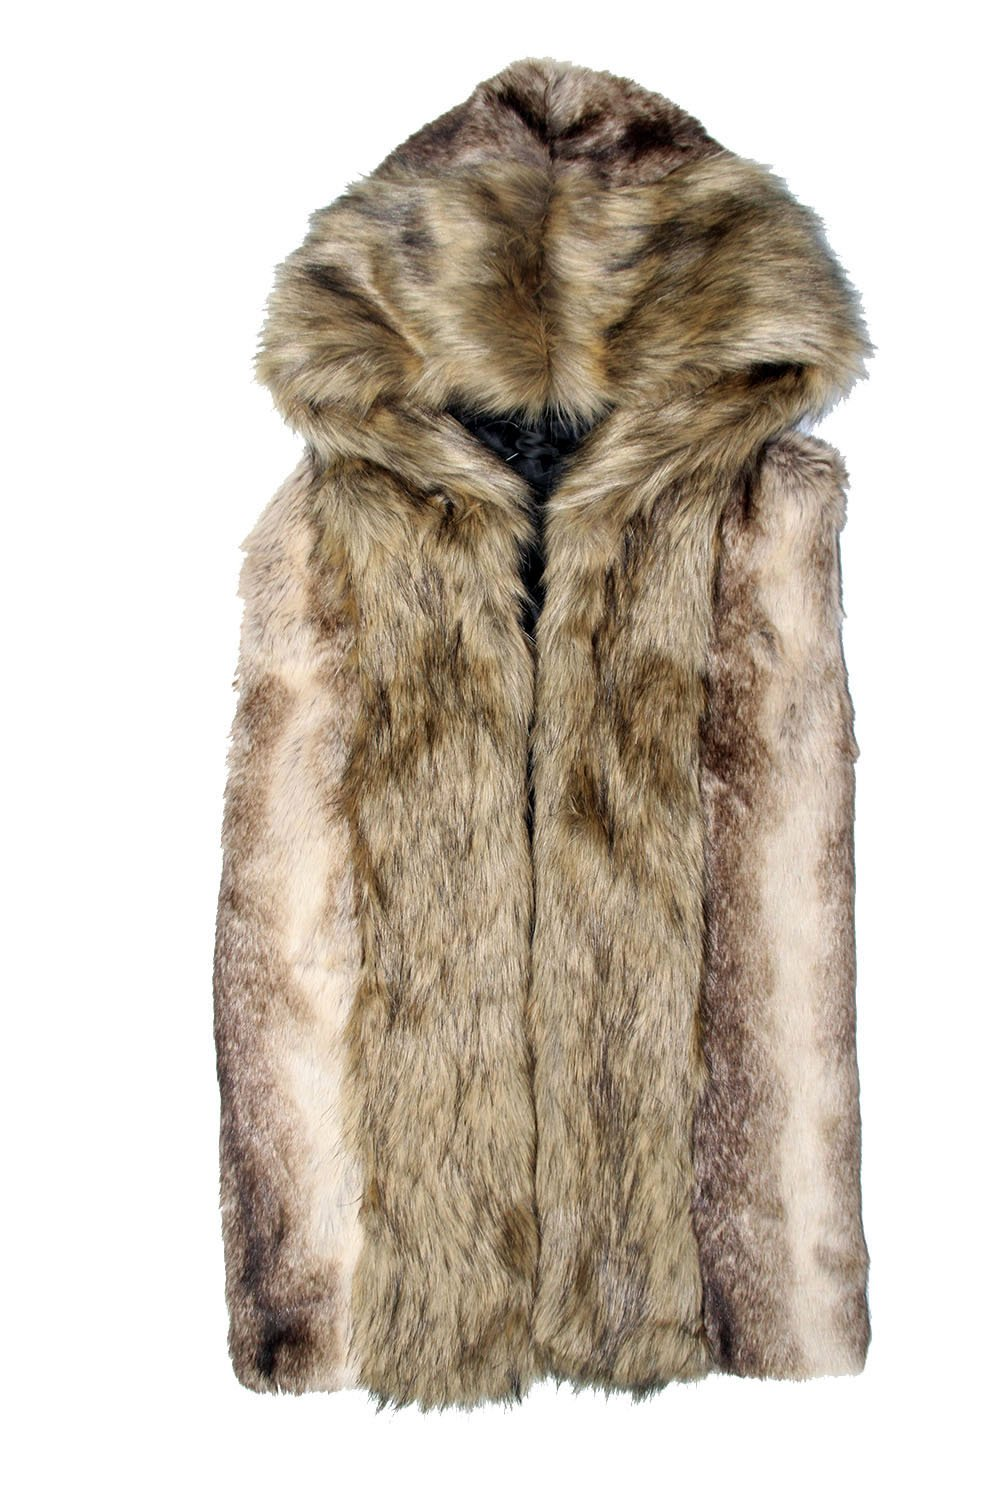 Idopy Men`s Luxury Faux Fur Sleeveless Jacket Vest with Hood Asian XL US M Grey by Idopy